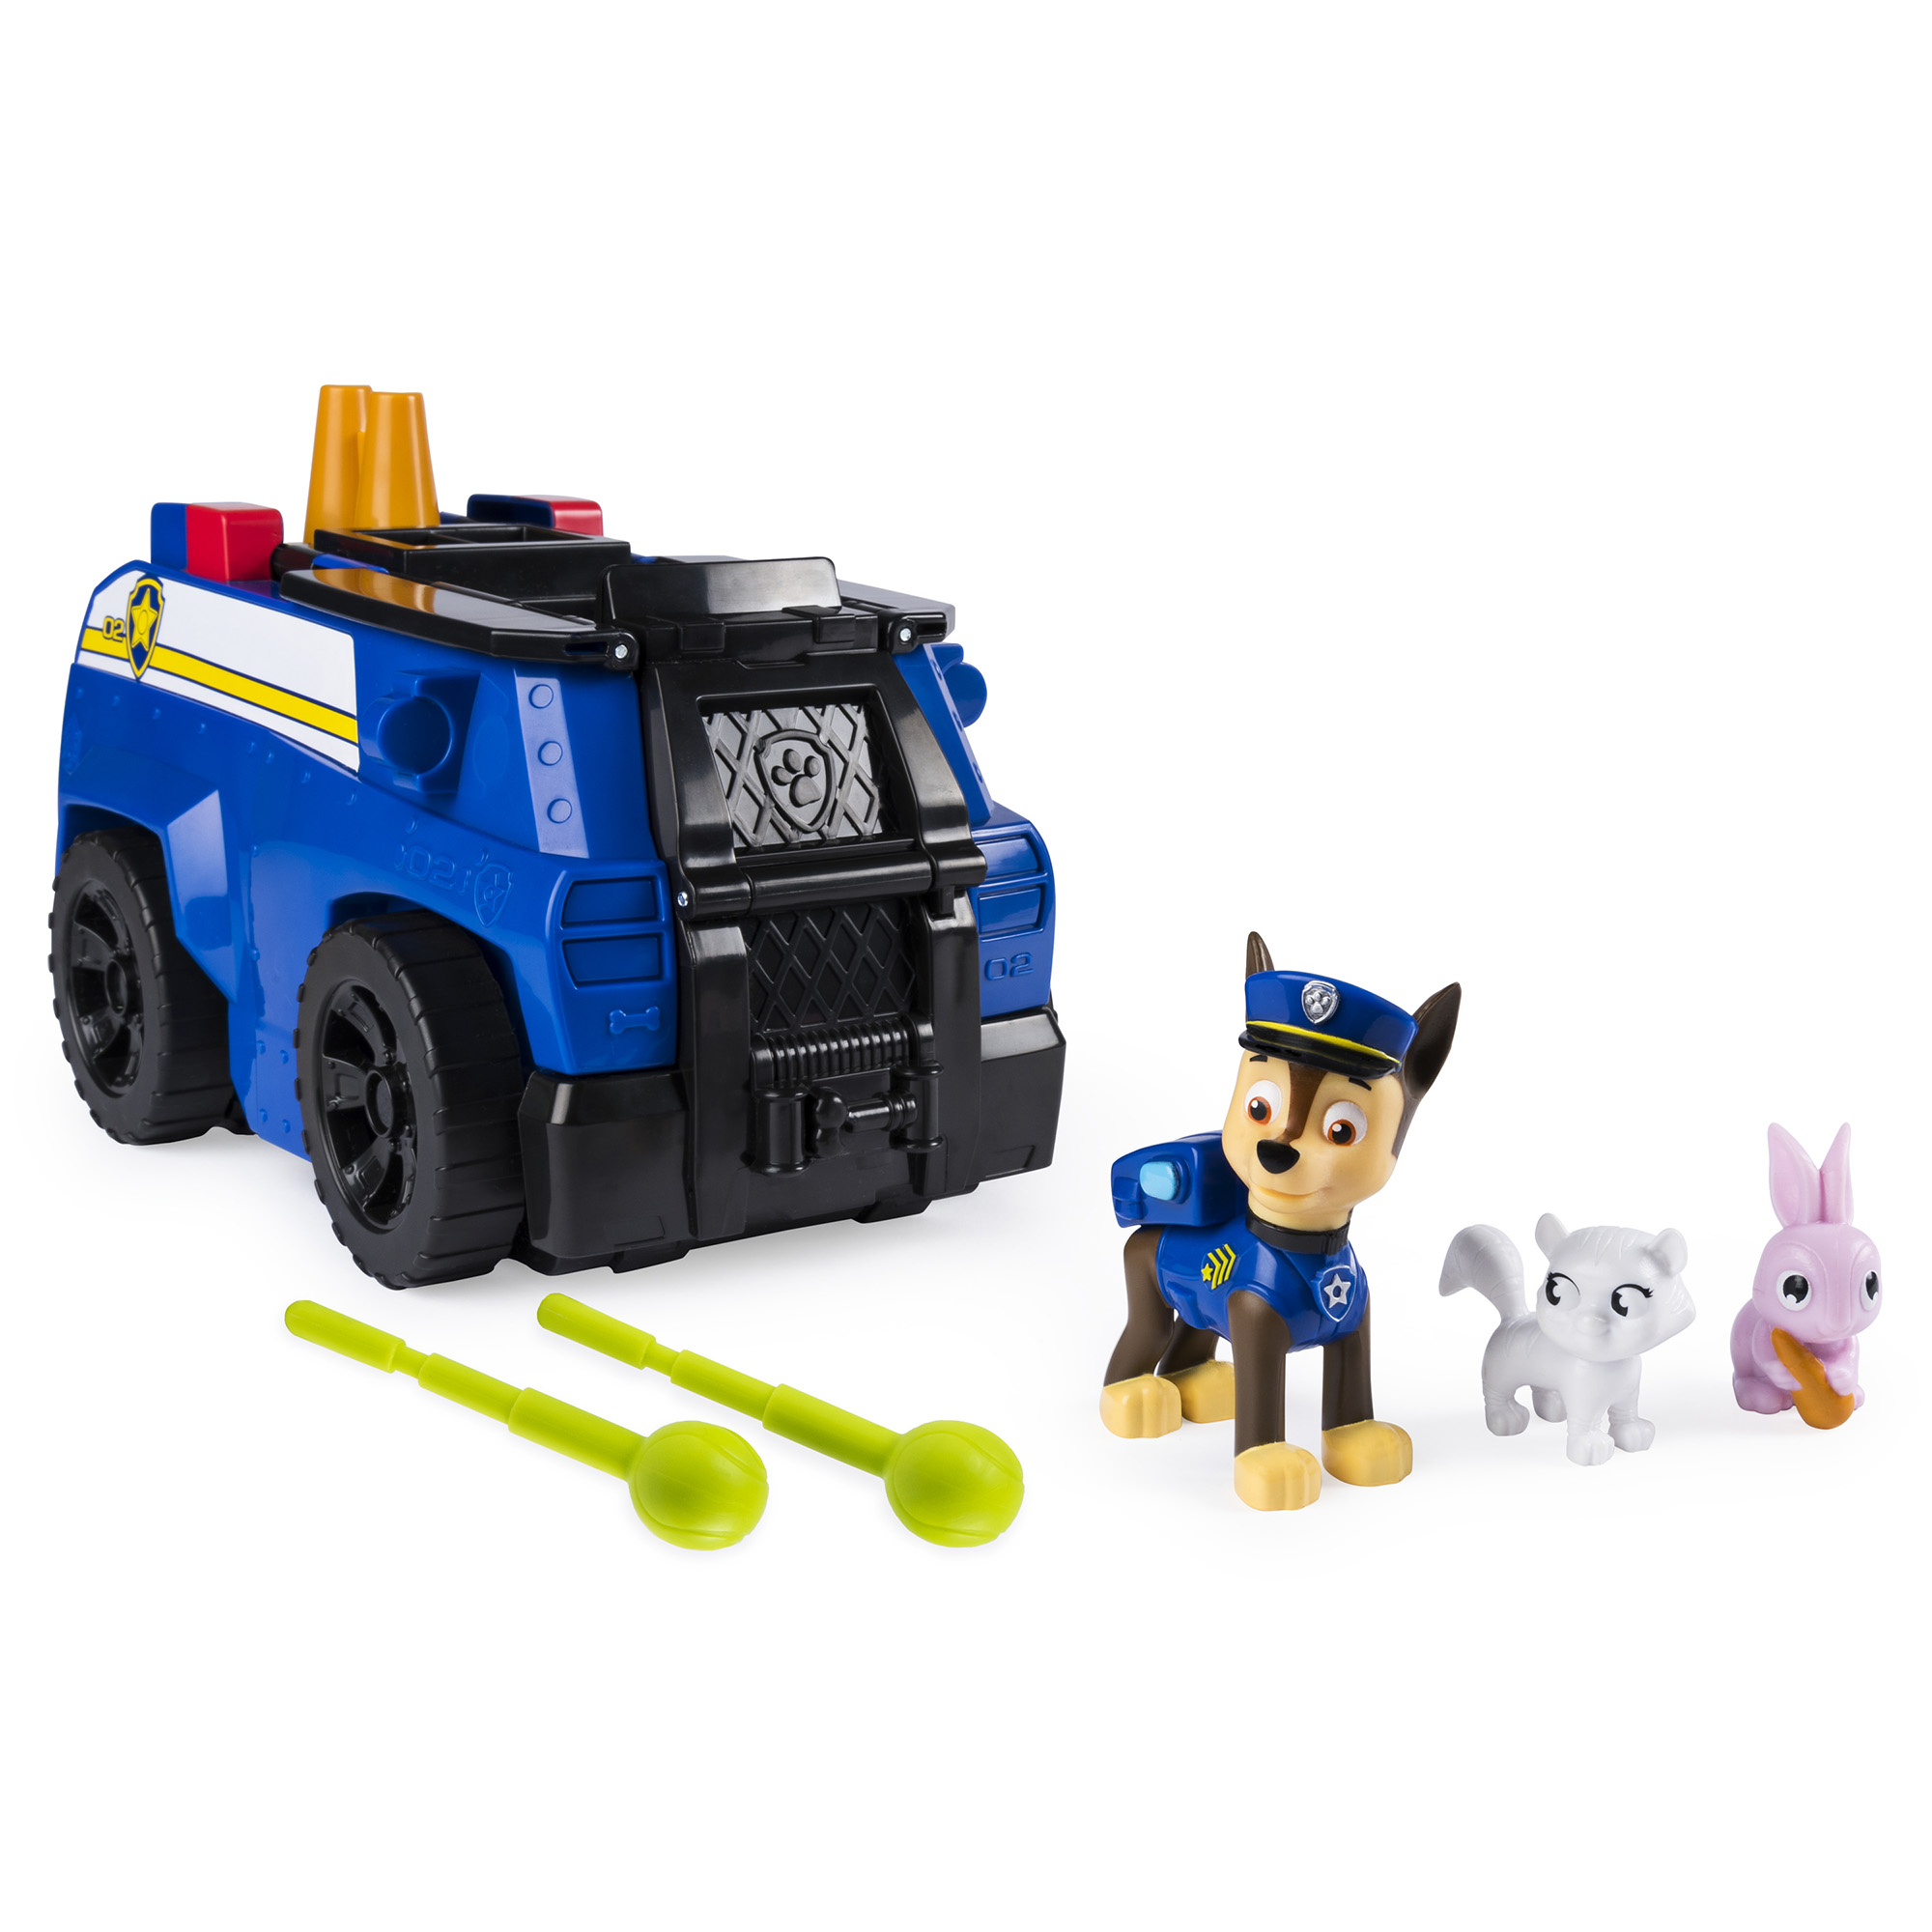 Picture of PAW Patrol Marshall & Chase Rescue Playset